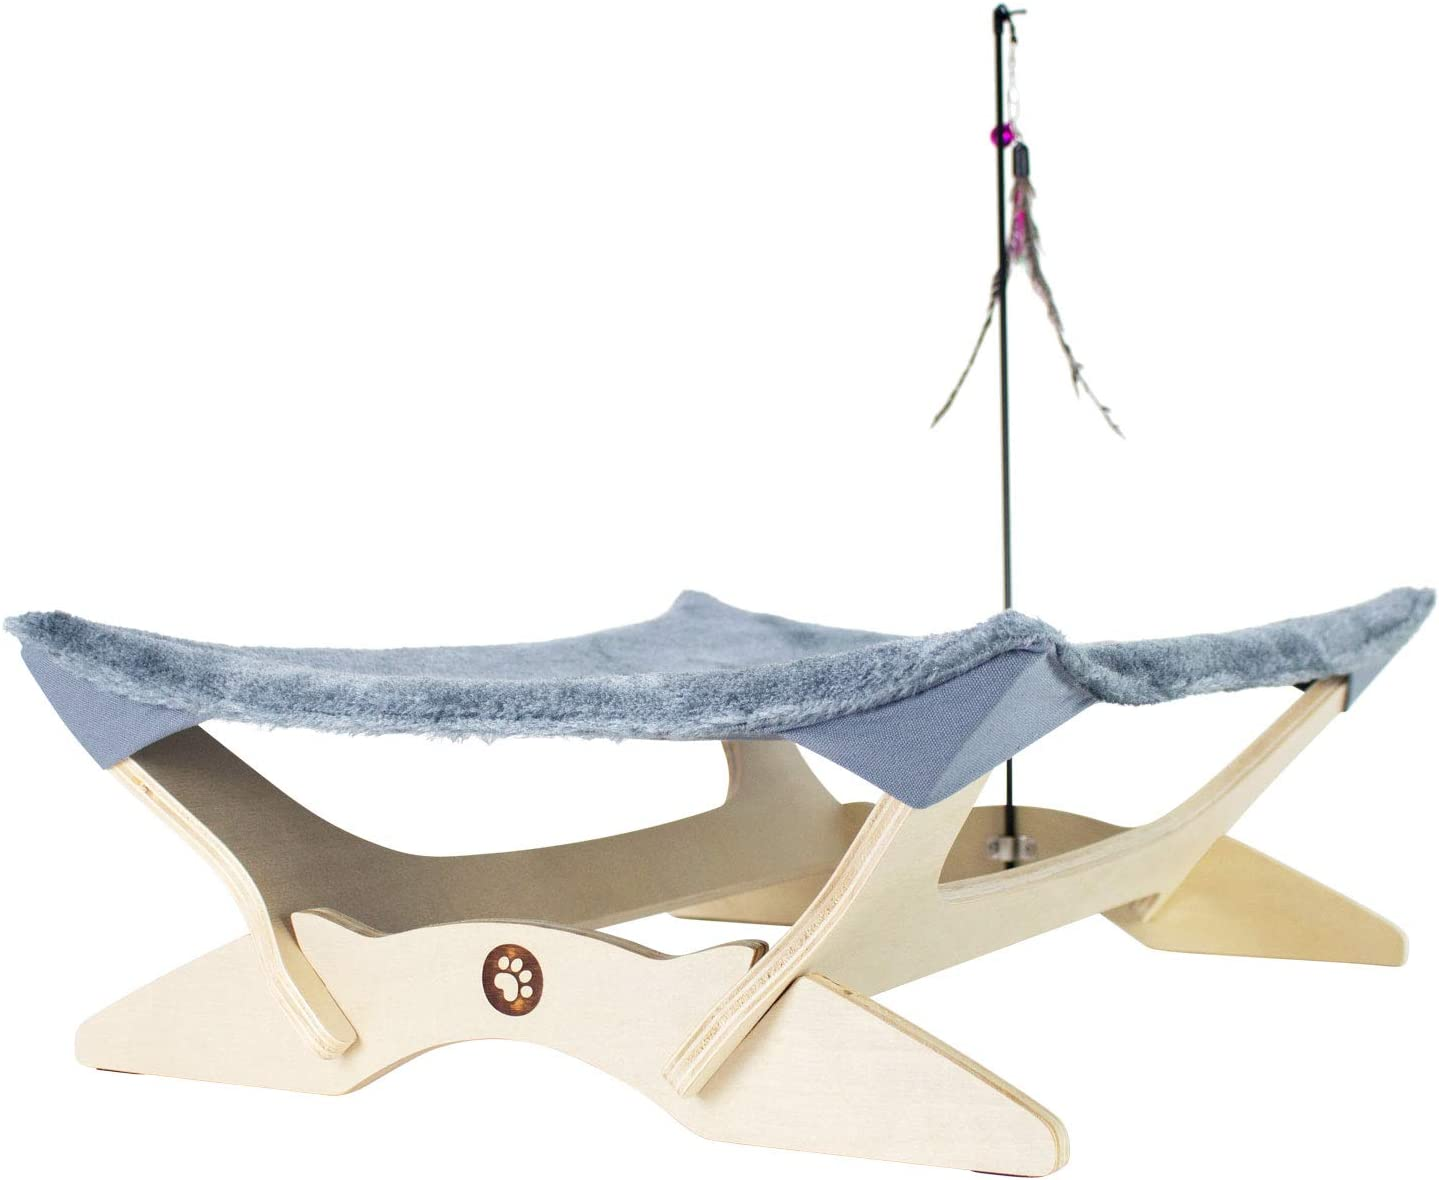 FrontPet Cat Hammock Bed, Luxury Lounger for Cats and Small Dogs. Includes Wood Base, Comfy Bed Hammock, and Feather Toy